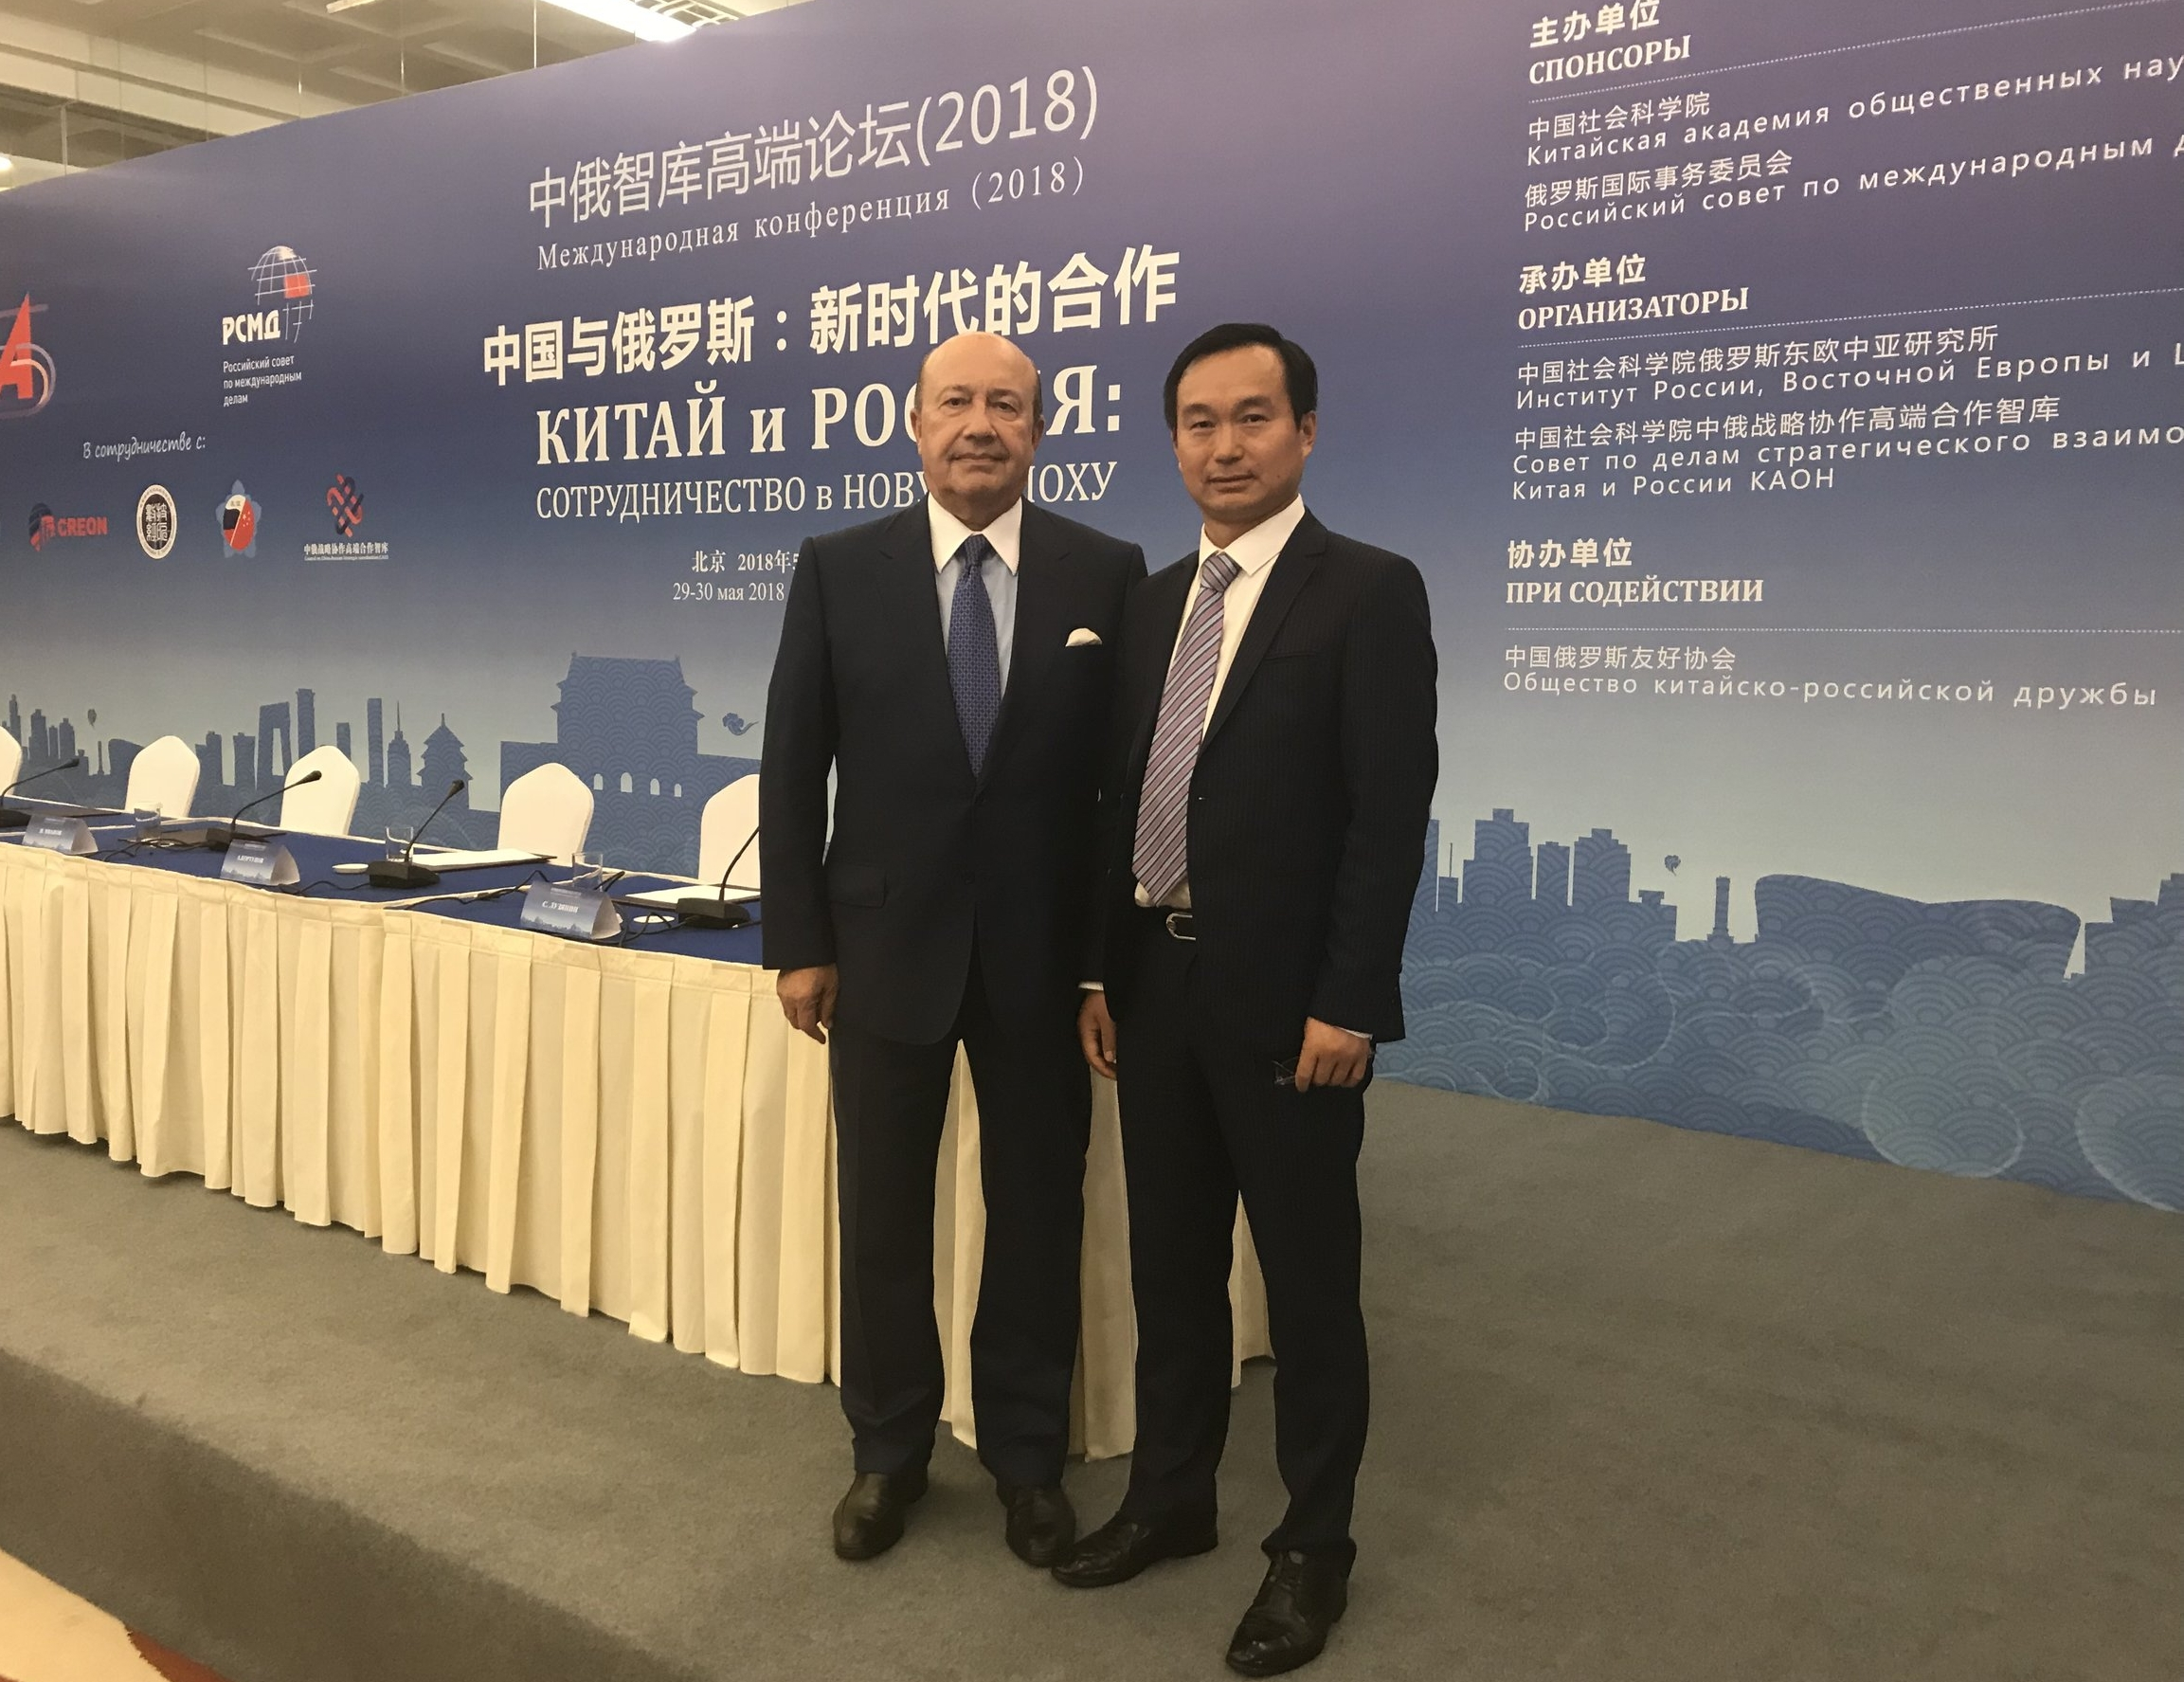 With former Russian Foreign Minister and Chairman of the Russian International Affairs Committee, Mr. Ivanov. Taken the Beijing-Russia Think Tank High-end Forum, May 2018.